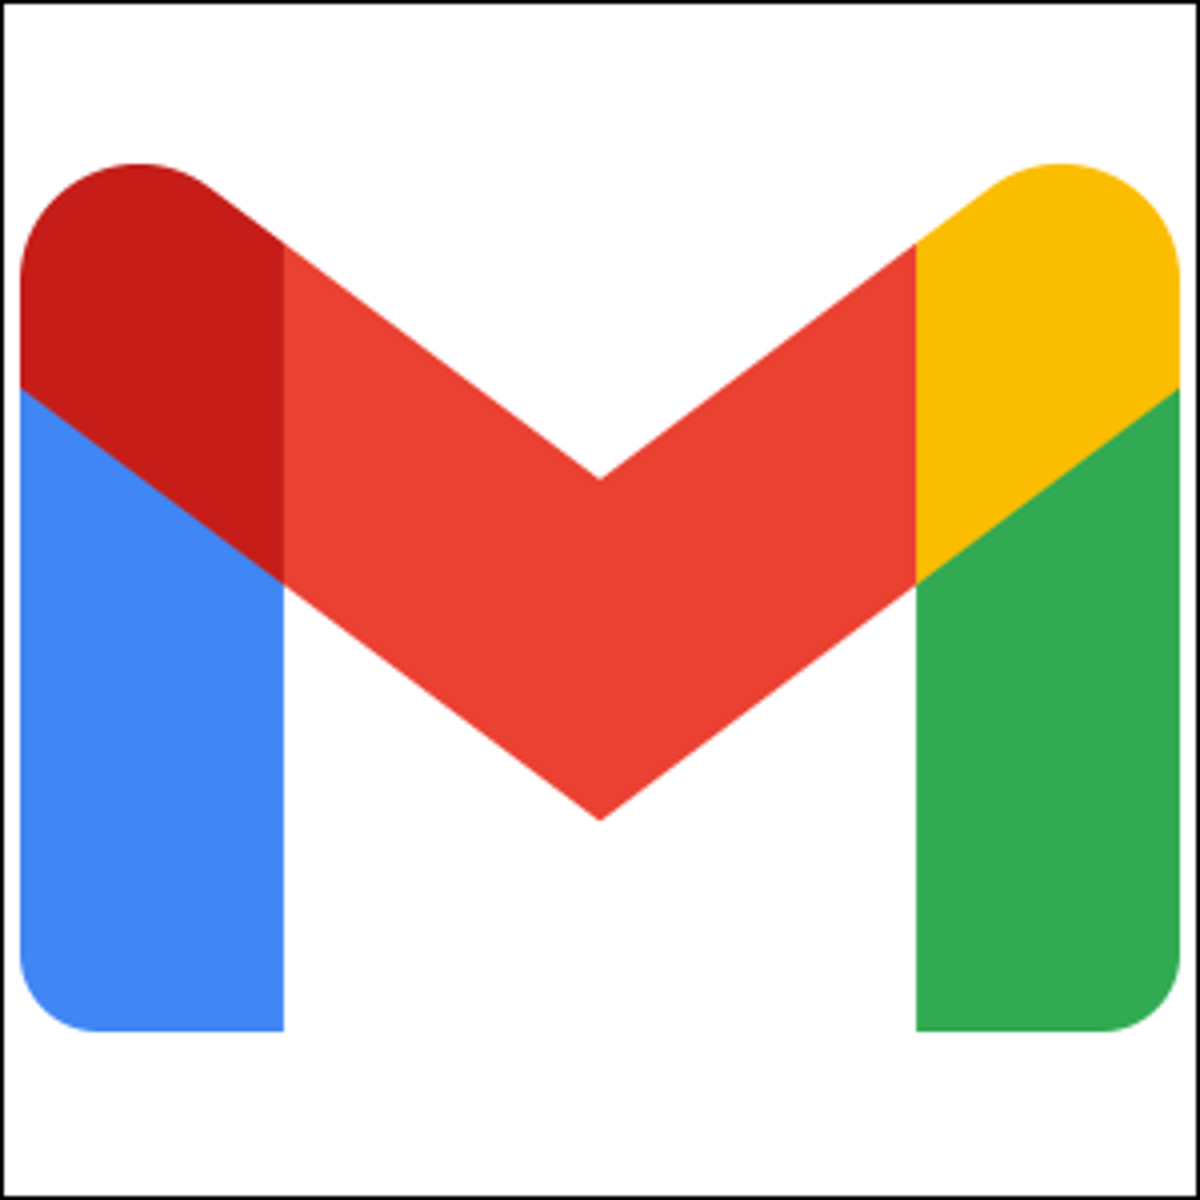 The 2021 logo for Gmail.